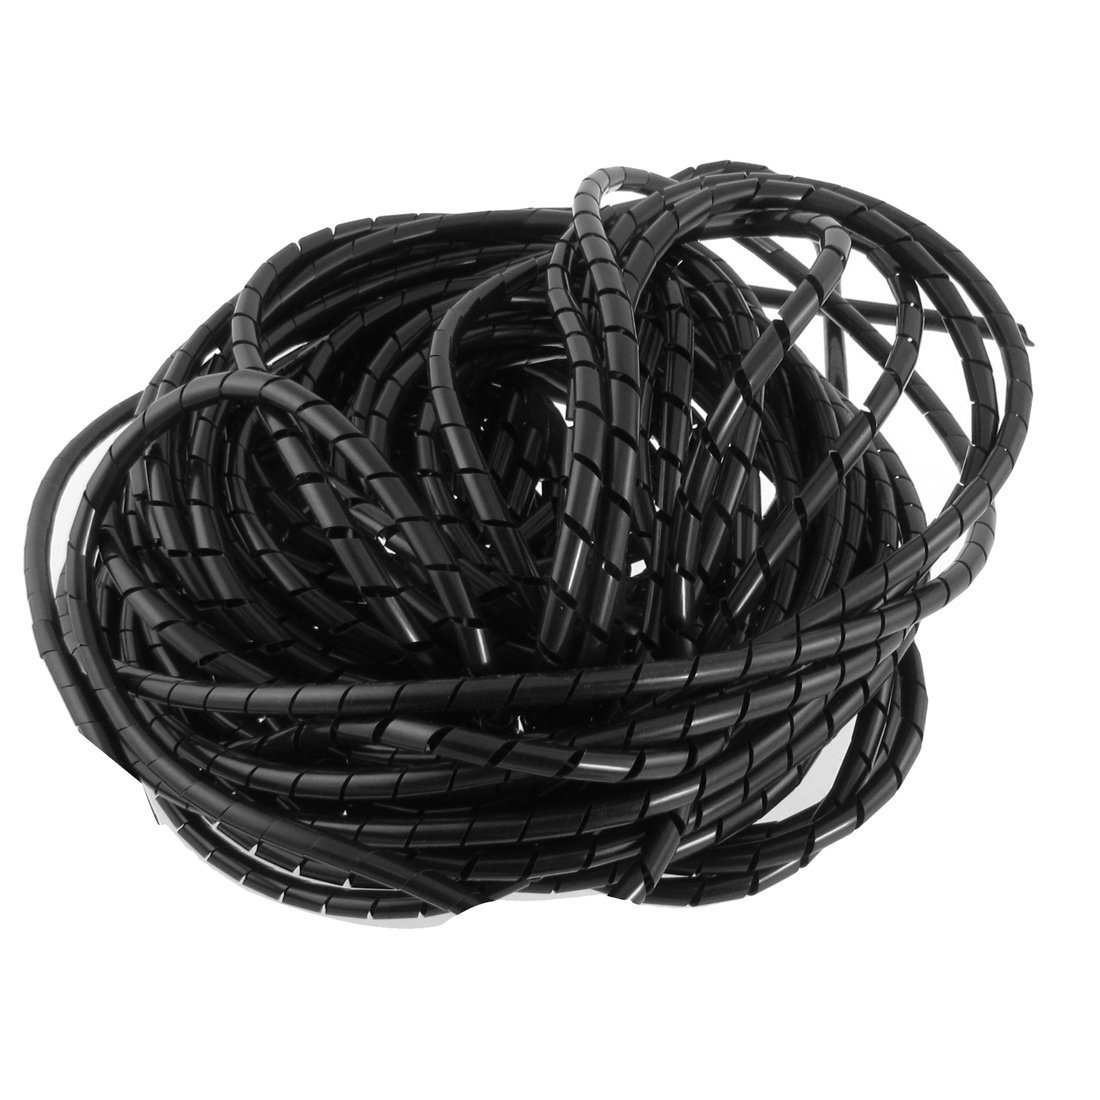 Copapa 21M 68 Ft PE Black Polyethylene Spiral Wire Wrap Tube PC Manage Cable 6mm 1/ 4'' for Computer Cable, Car Cable (Dia 6MM-Length21M, Black)